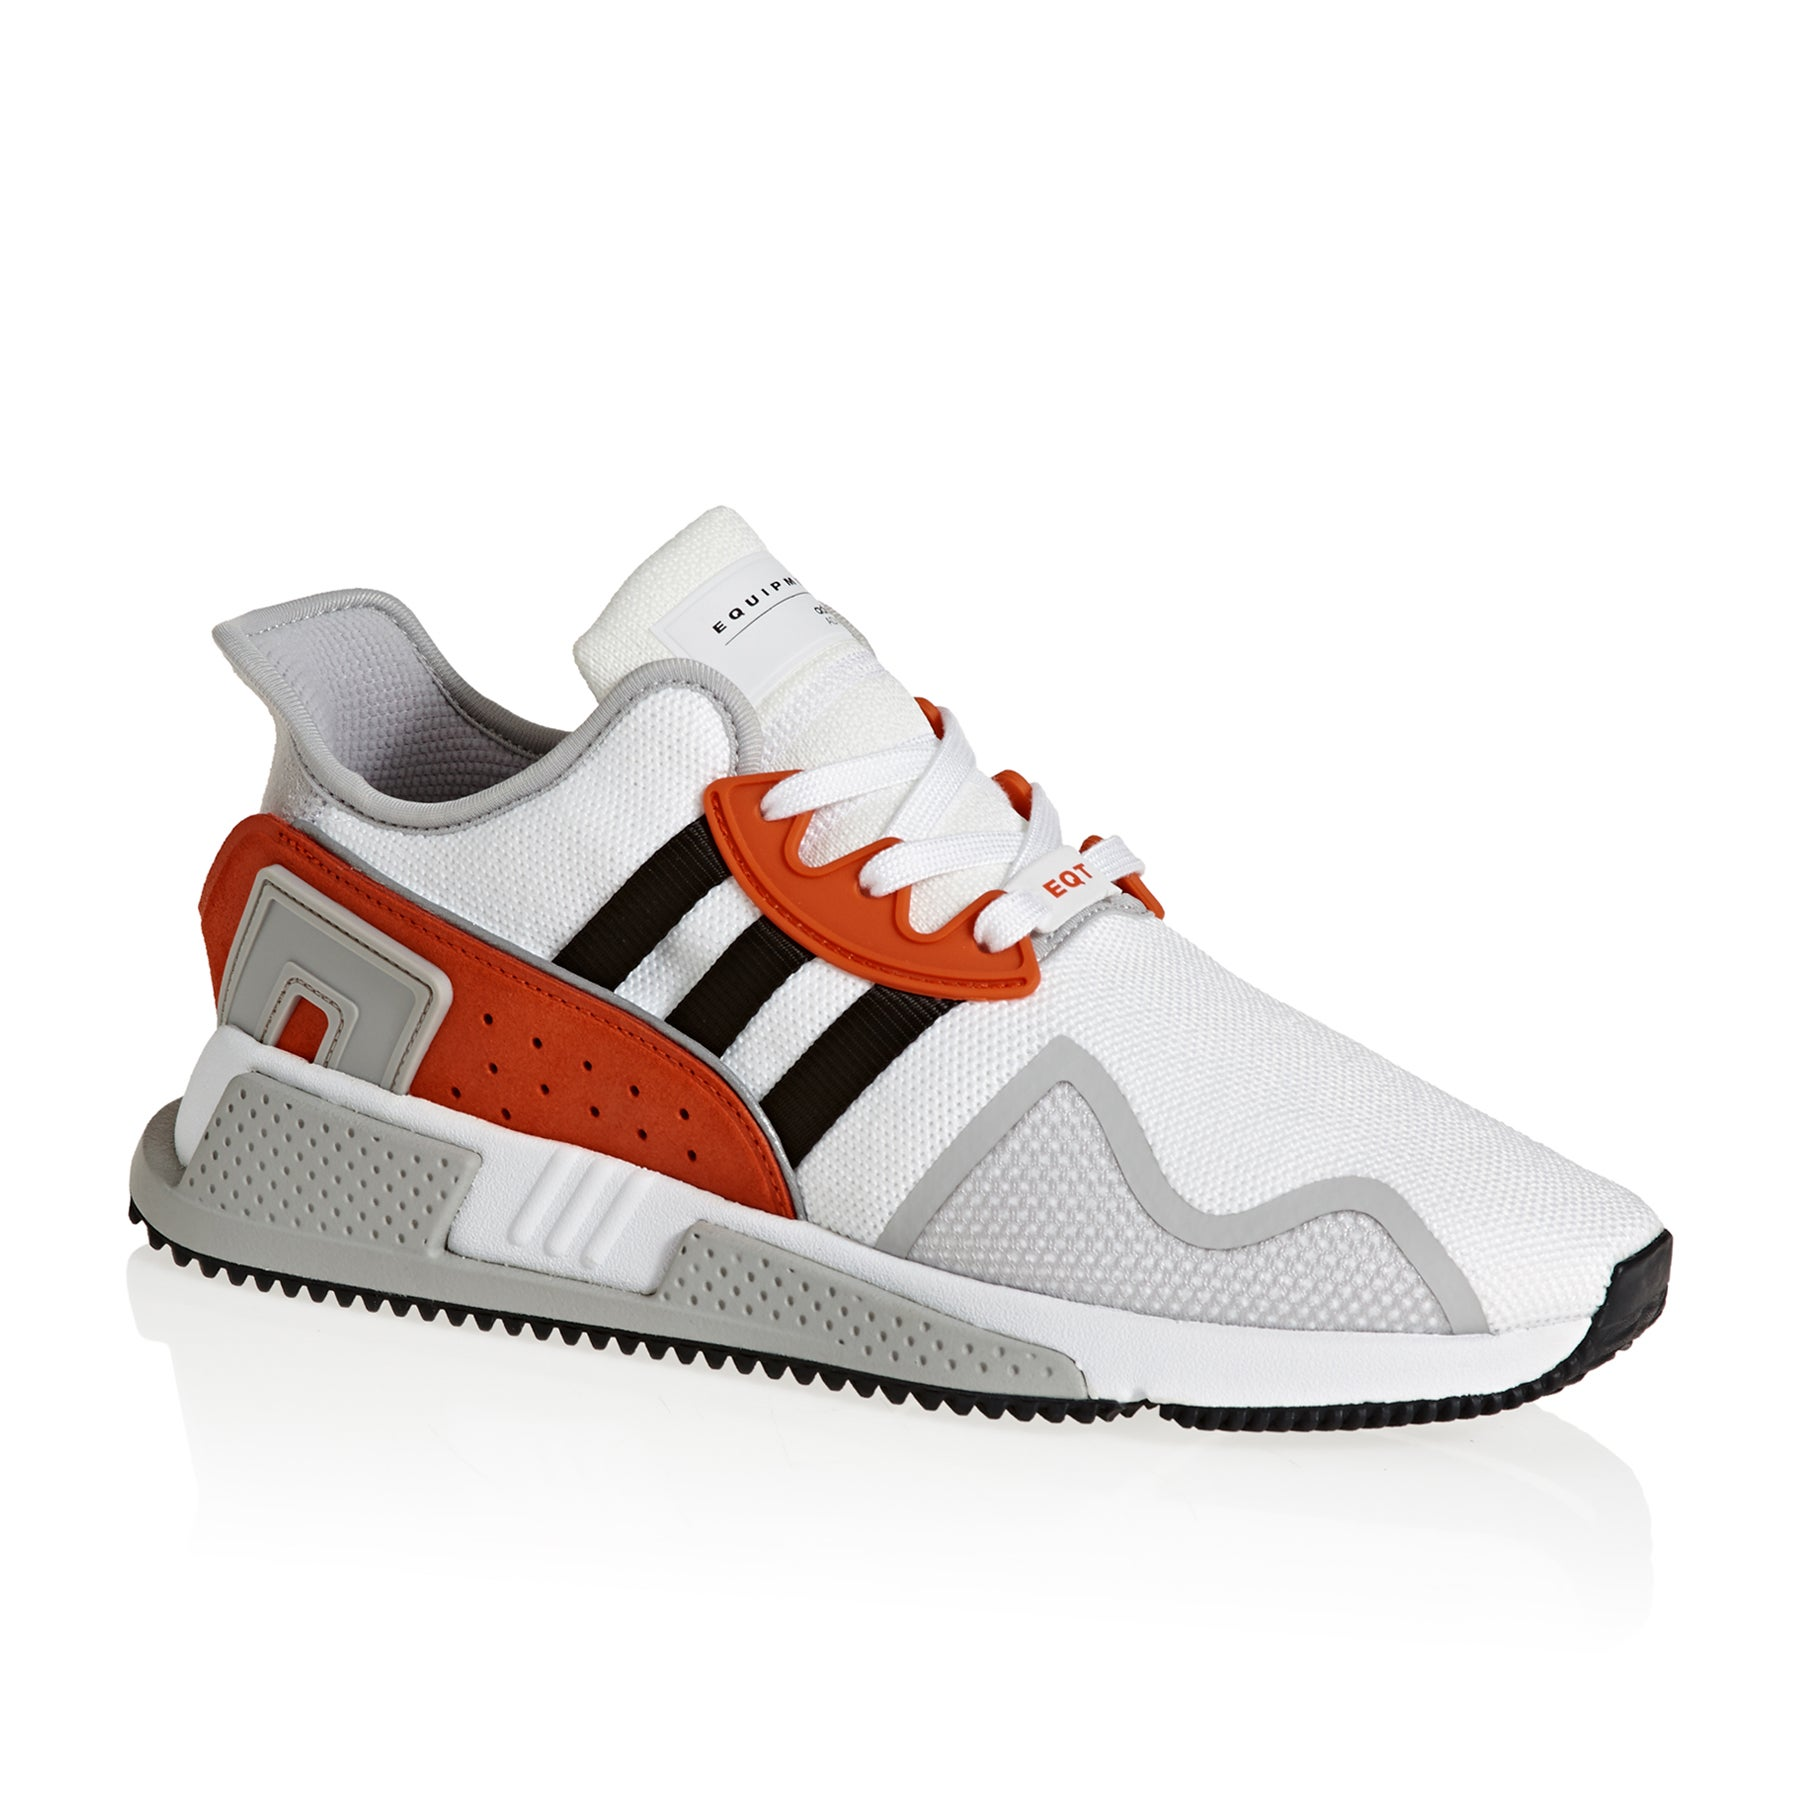 Adidas Originals EQT Cushion Adv Shoes - White Black Red